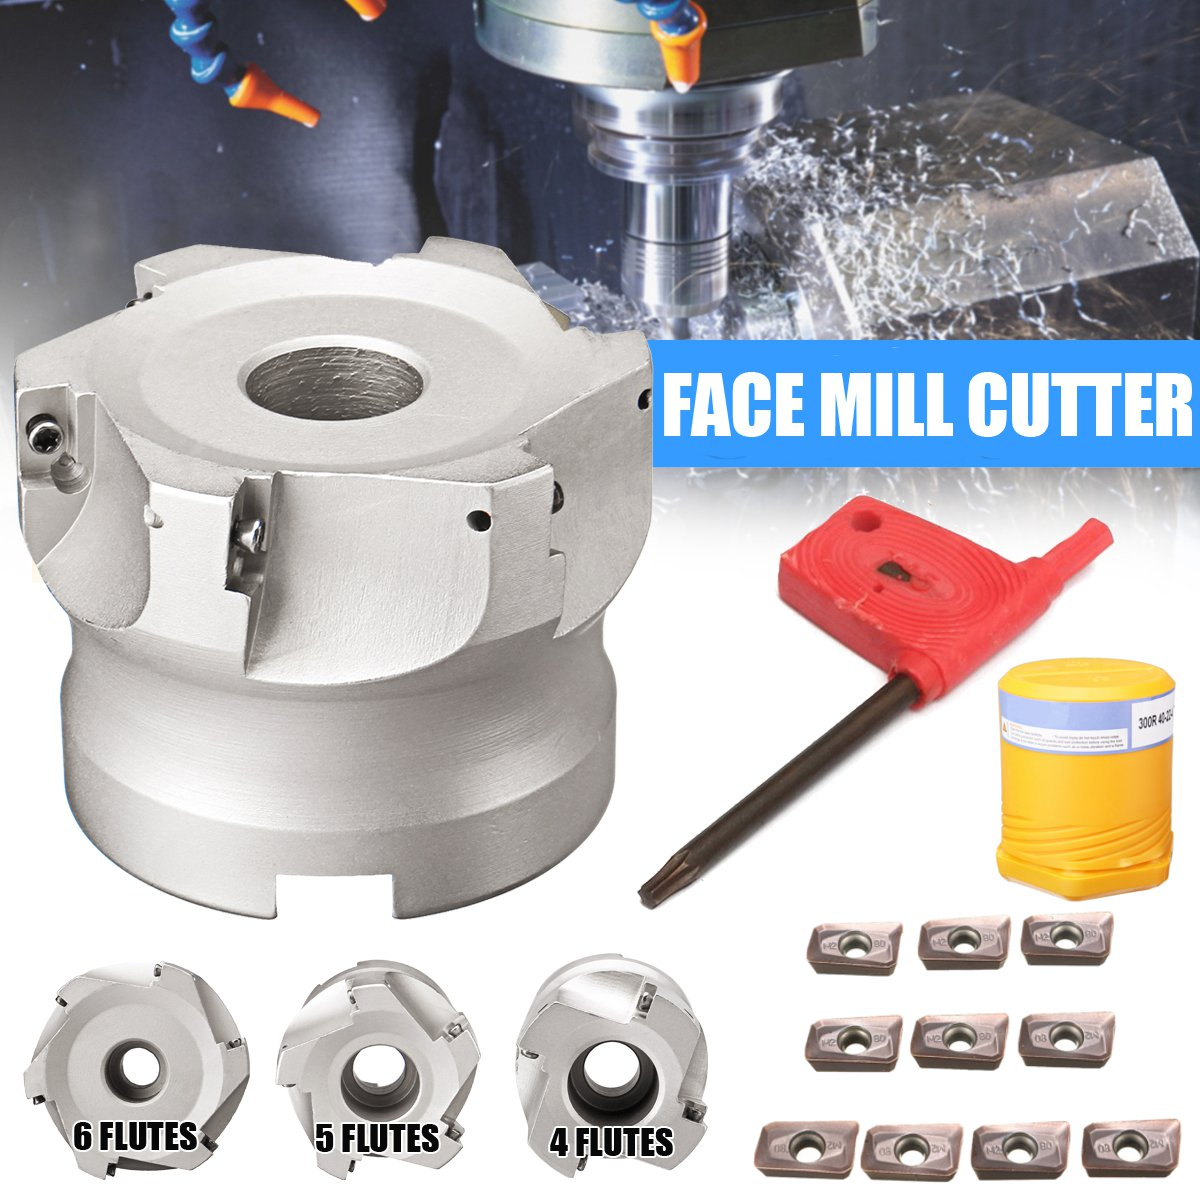 New 40mm/50mm/63mm Face Mill CNC Milling Cutter Head + 10x APMT1135 Carbide Inserts 40CrMo Carbide AlloyNew 40mm/50mm/63mm Face Mill CNC Milling Cutter Head + 10x APMT1135 Carbide Inserts 40CrMo Carbide Alloy